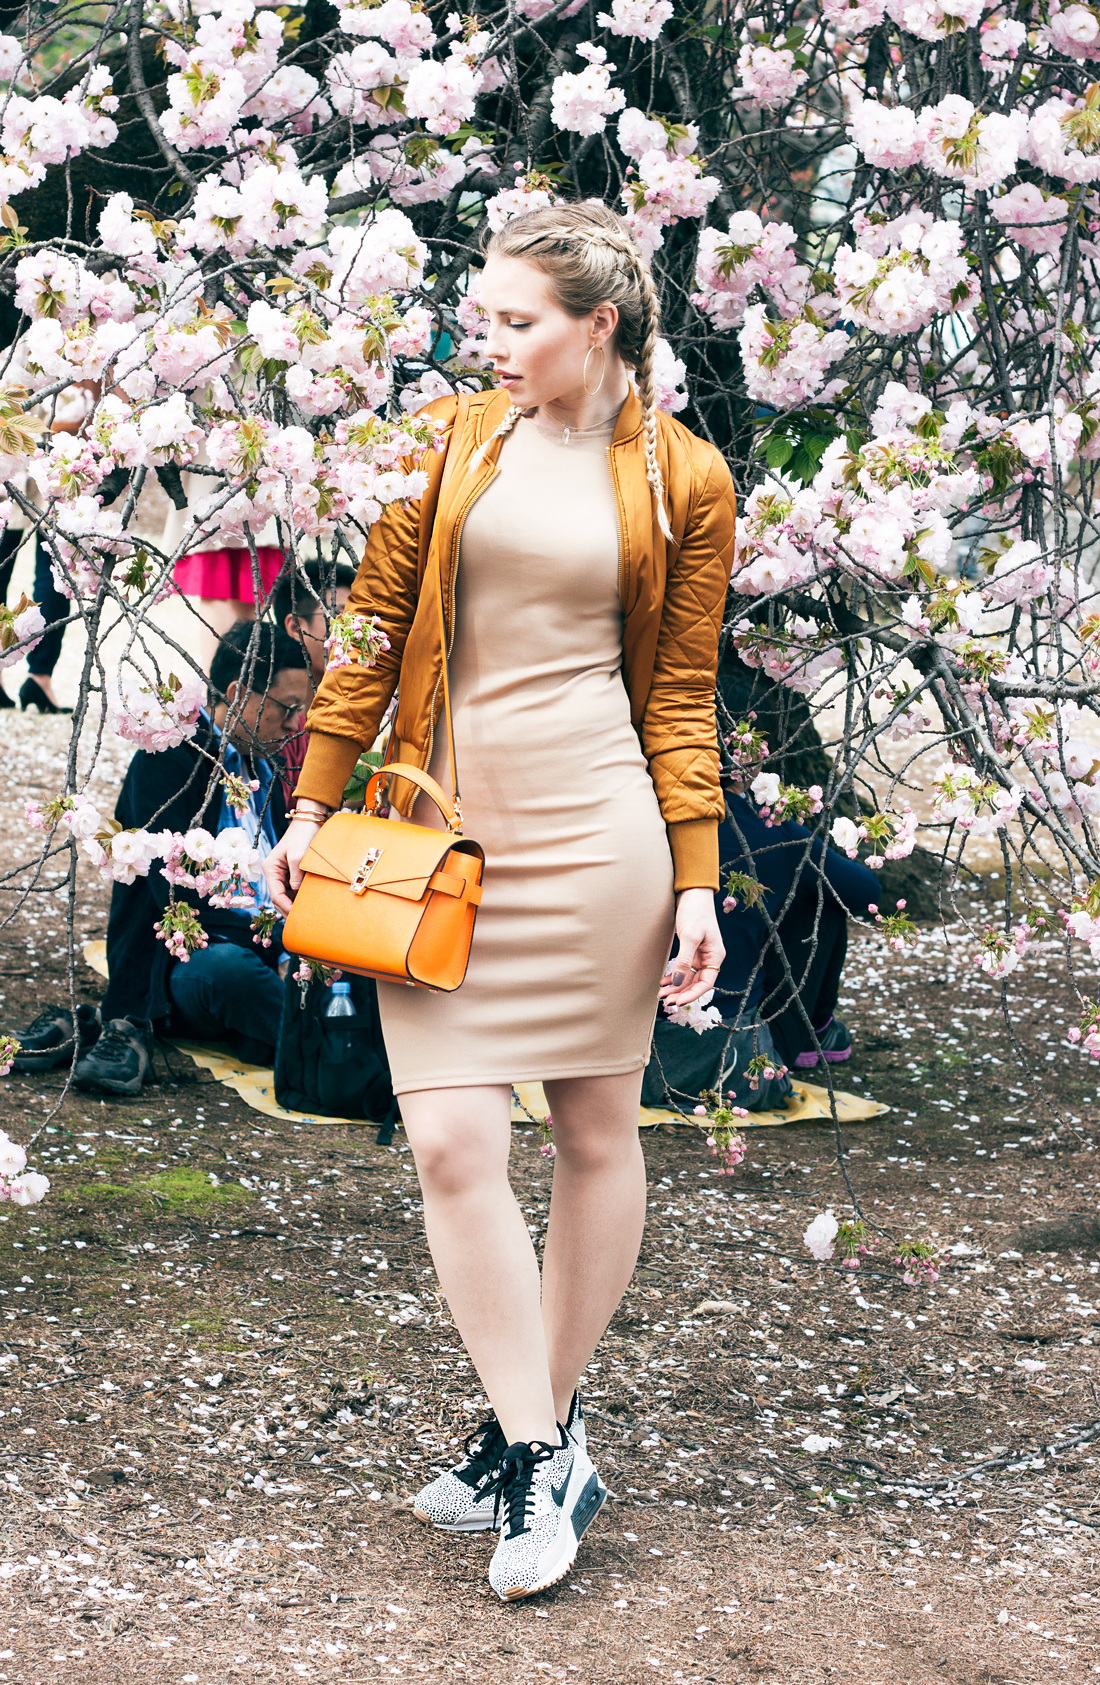 cherry blossoms, spring tokyo, tokyo, japan, spring 2016, late blooming cherry blossoms, boxer braids, dutch braids, tokyo blog, pink cherry blossoms, braid addict, gold bomber jacket, nude dress, orange handbag, henri bendel handbag, hoop earrings